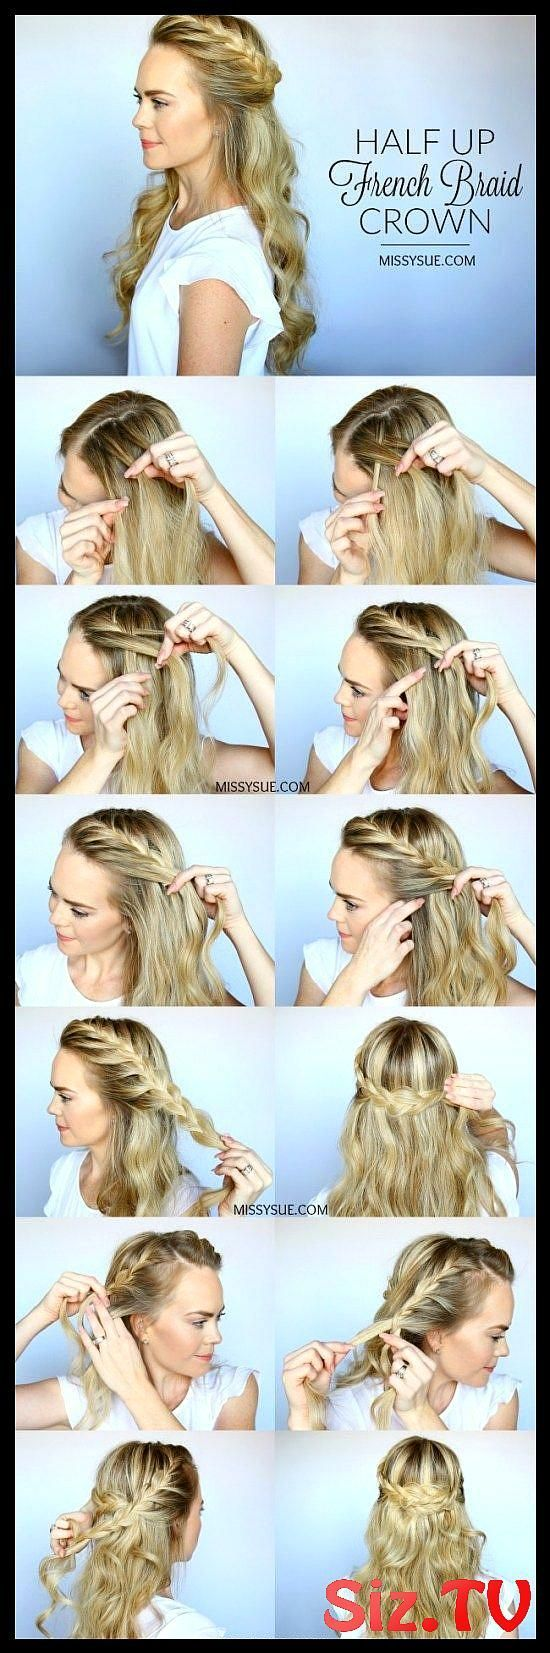 15 Easy Prom Hairstyles For Long Hair You Can Diy At Home Detailed 15 Easy Prom Hairst Braids For Medium Length Hair Simple Prom Hair Medium Length Hair Styles